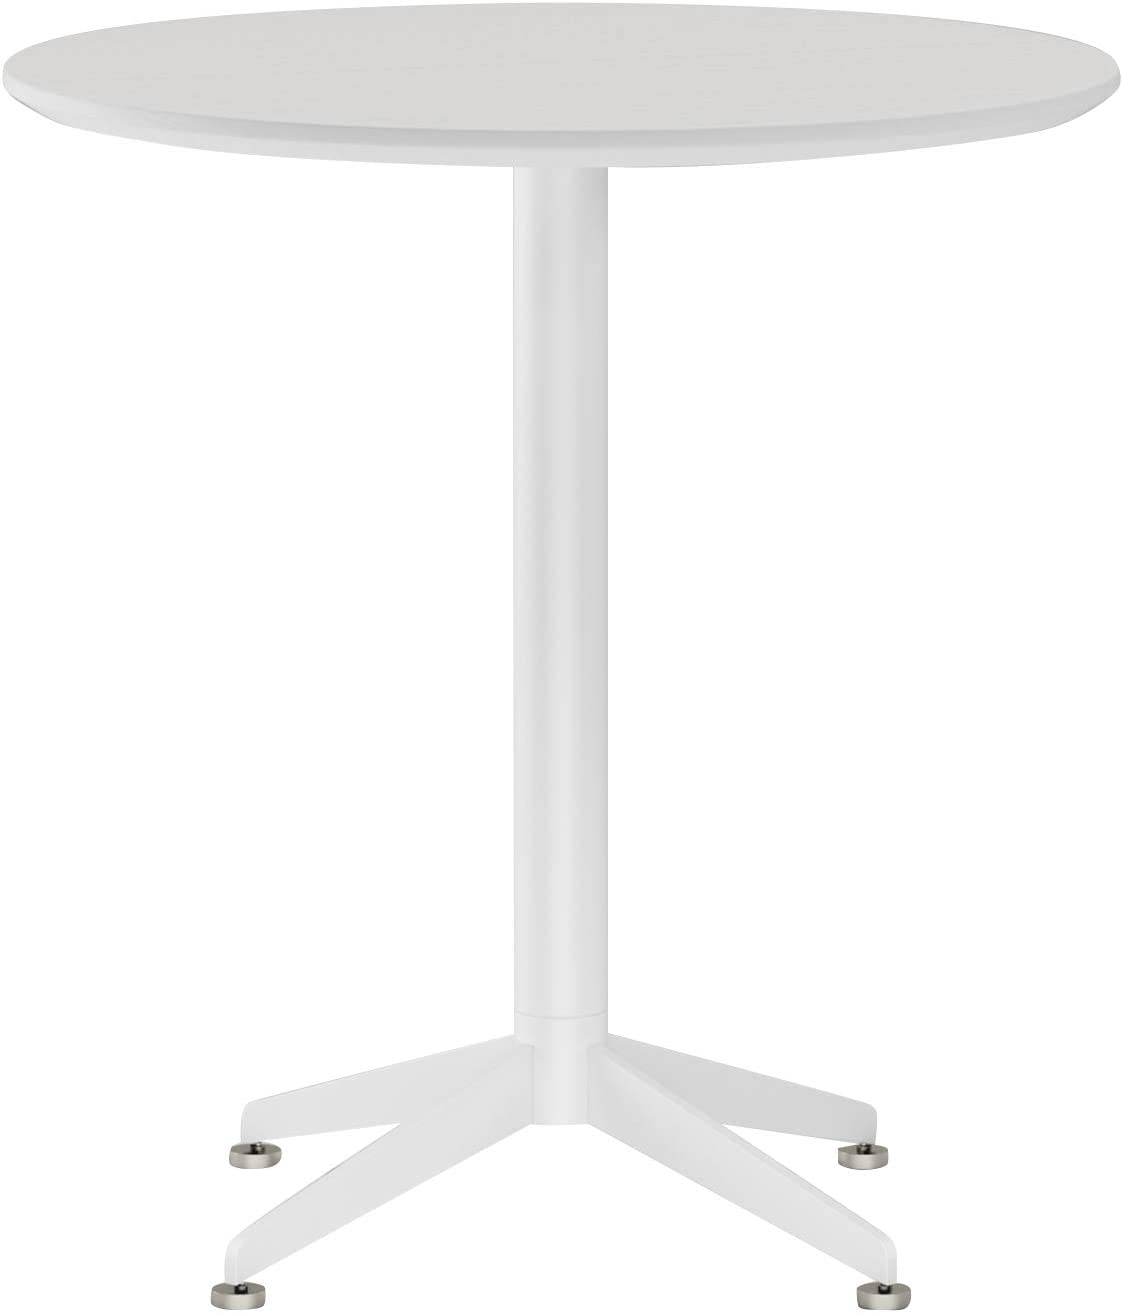 White Dining Table Round Small Office Table Conference Table Coffee Meeting Table For Office Boardroom Kitchen Living Room Waterproof Desktop Easy Assembly 27 5 Inch Home Kitchen Tables